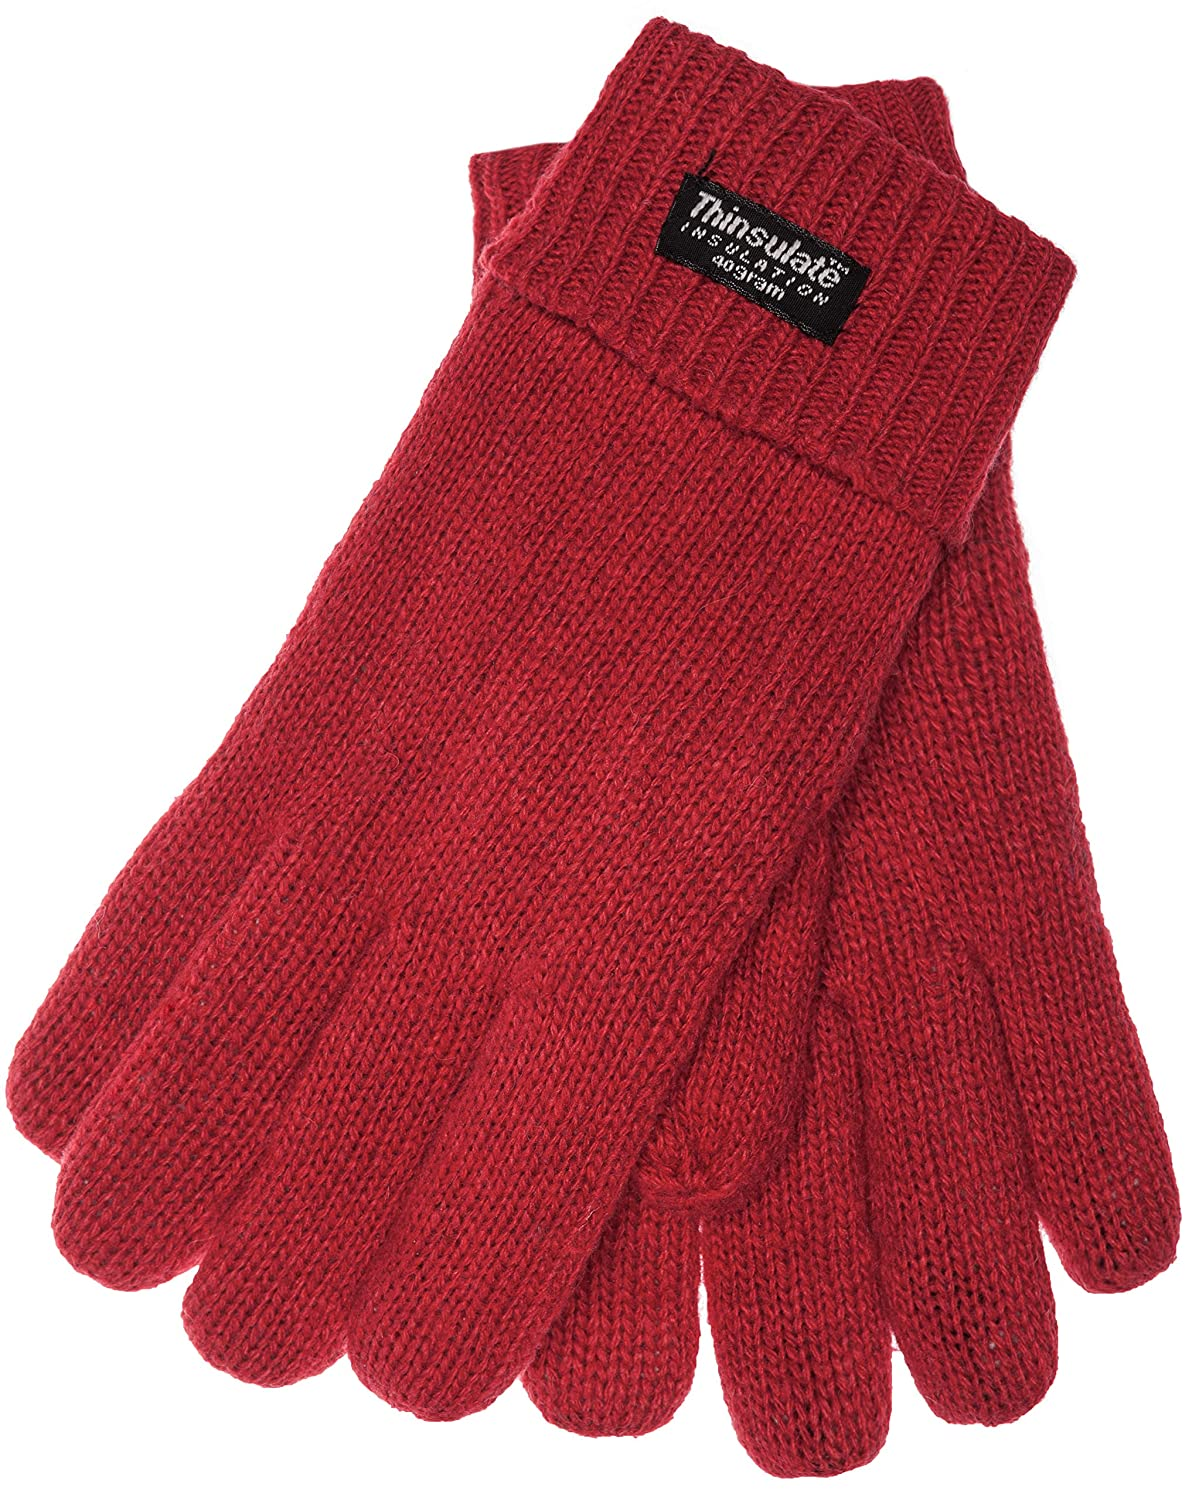 EEM Thinsulate Gloves for Children, Thermo Insulation 2817C-PARENT